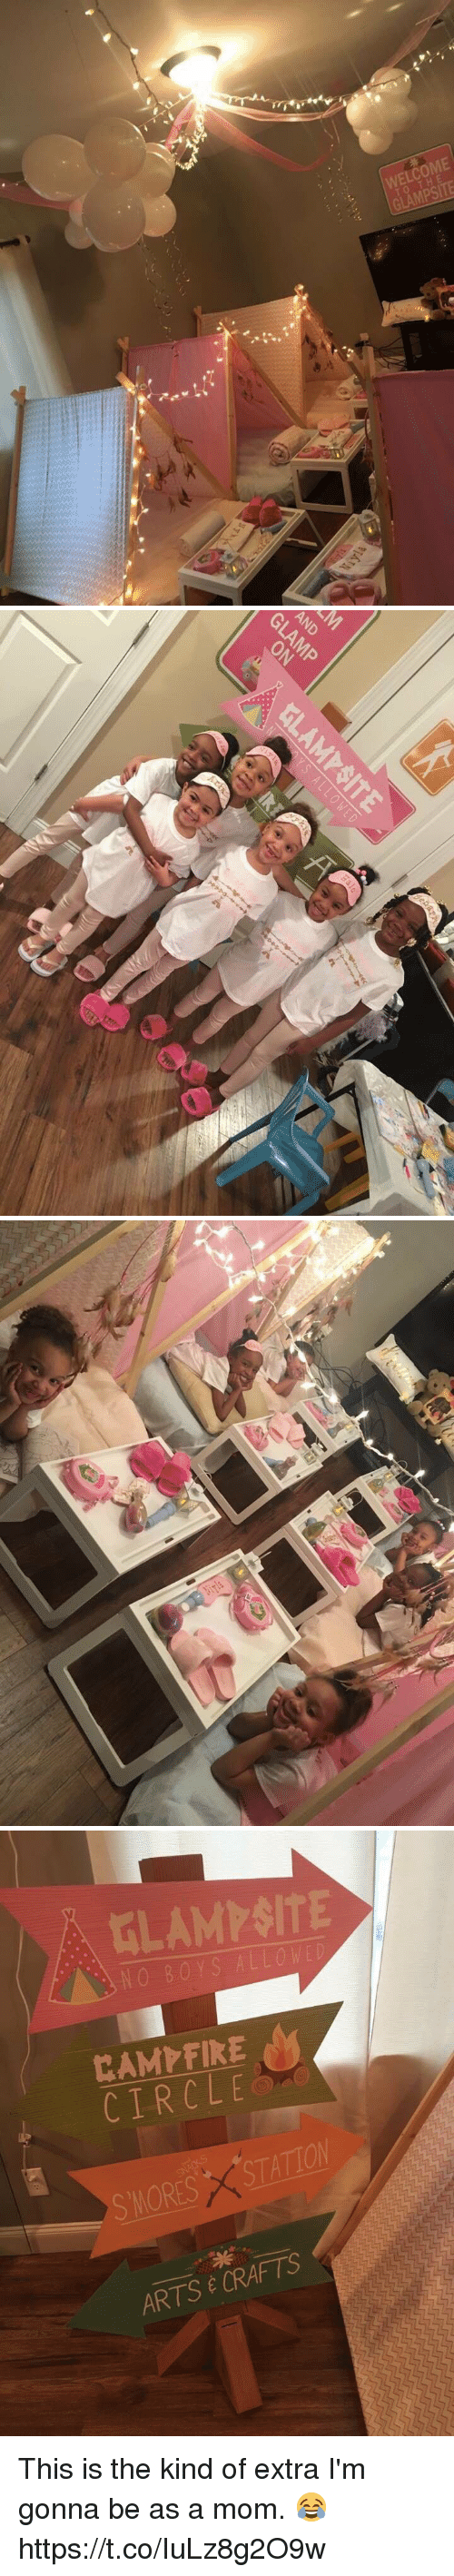 Relatable, Mom, and Arts: WELCOME  TO THE  GLAMPSITE   AND   CIRCLE  X STATION  SMORES CRAFTS  E ARTS This is the kind of extra I'm gonna be as a mom. 😂 https://t.co/IuLz8g2O9w